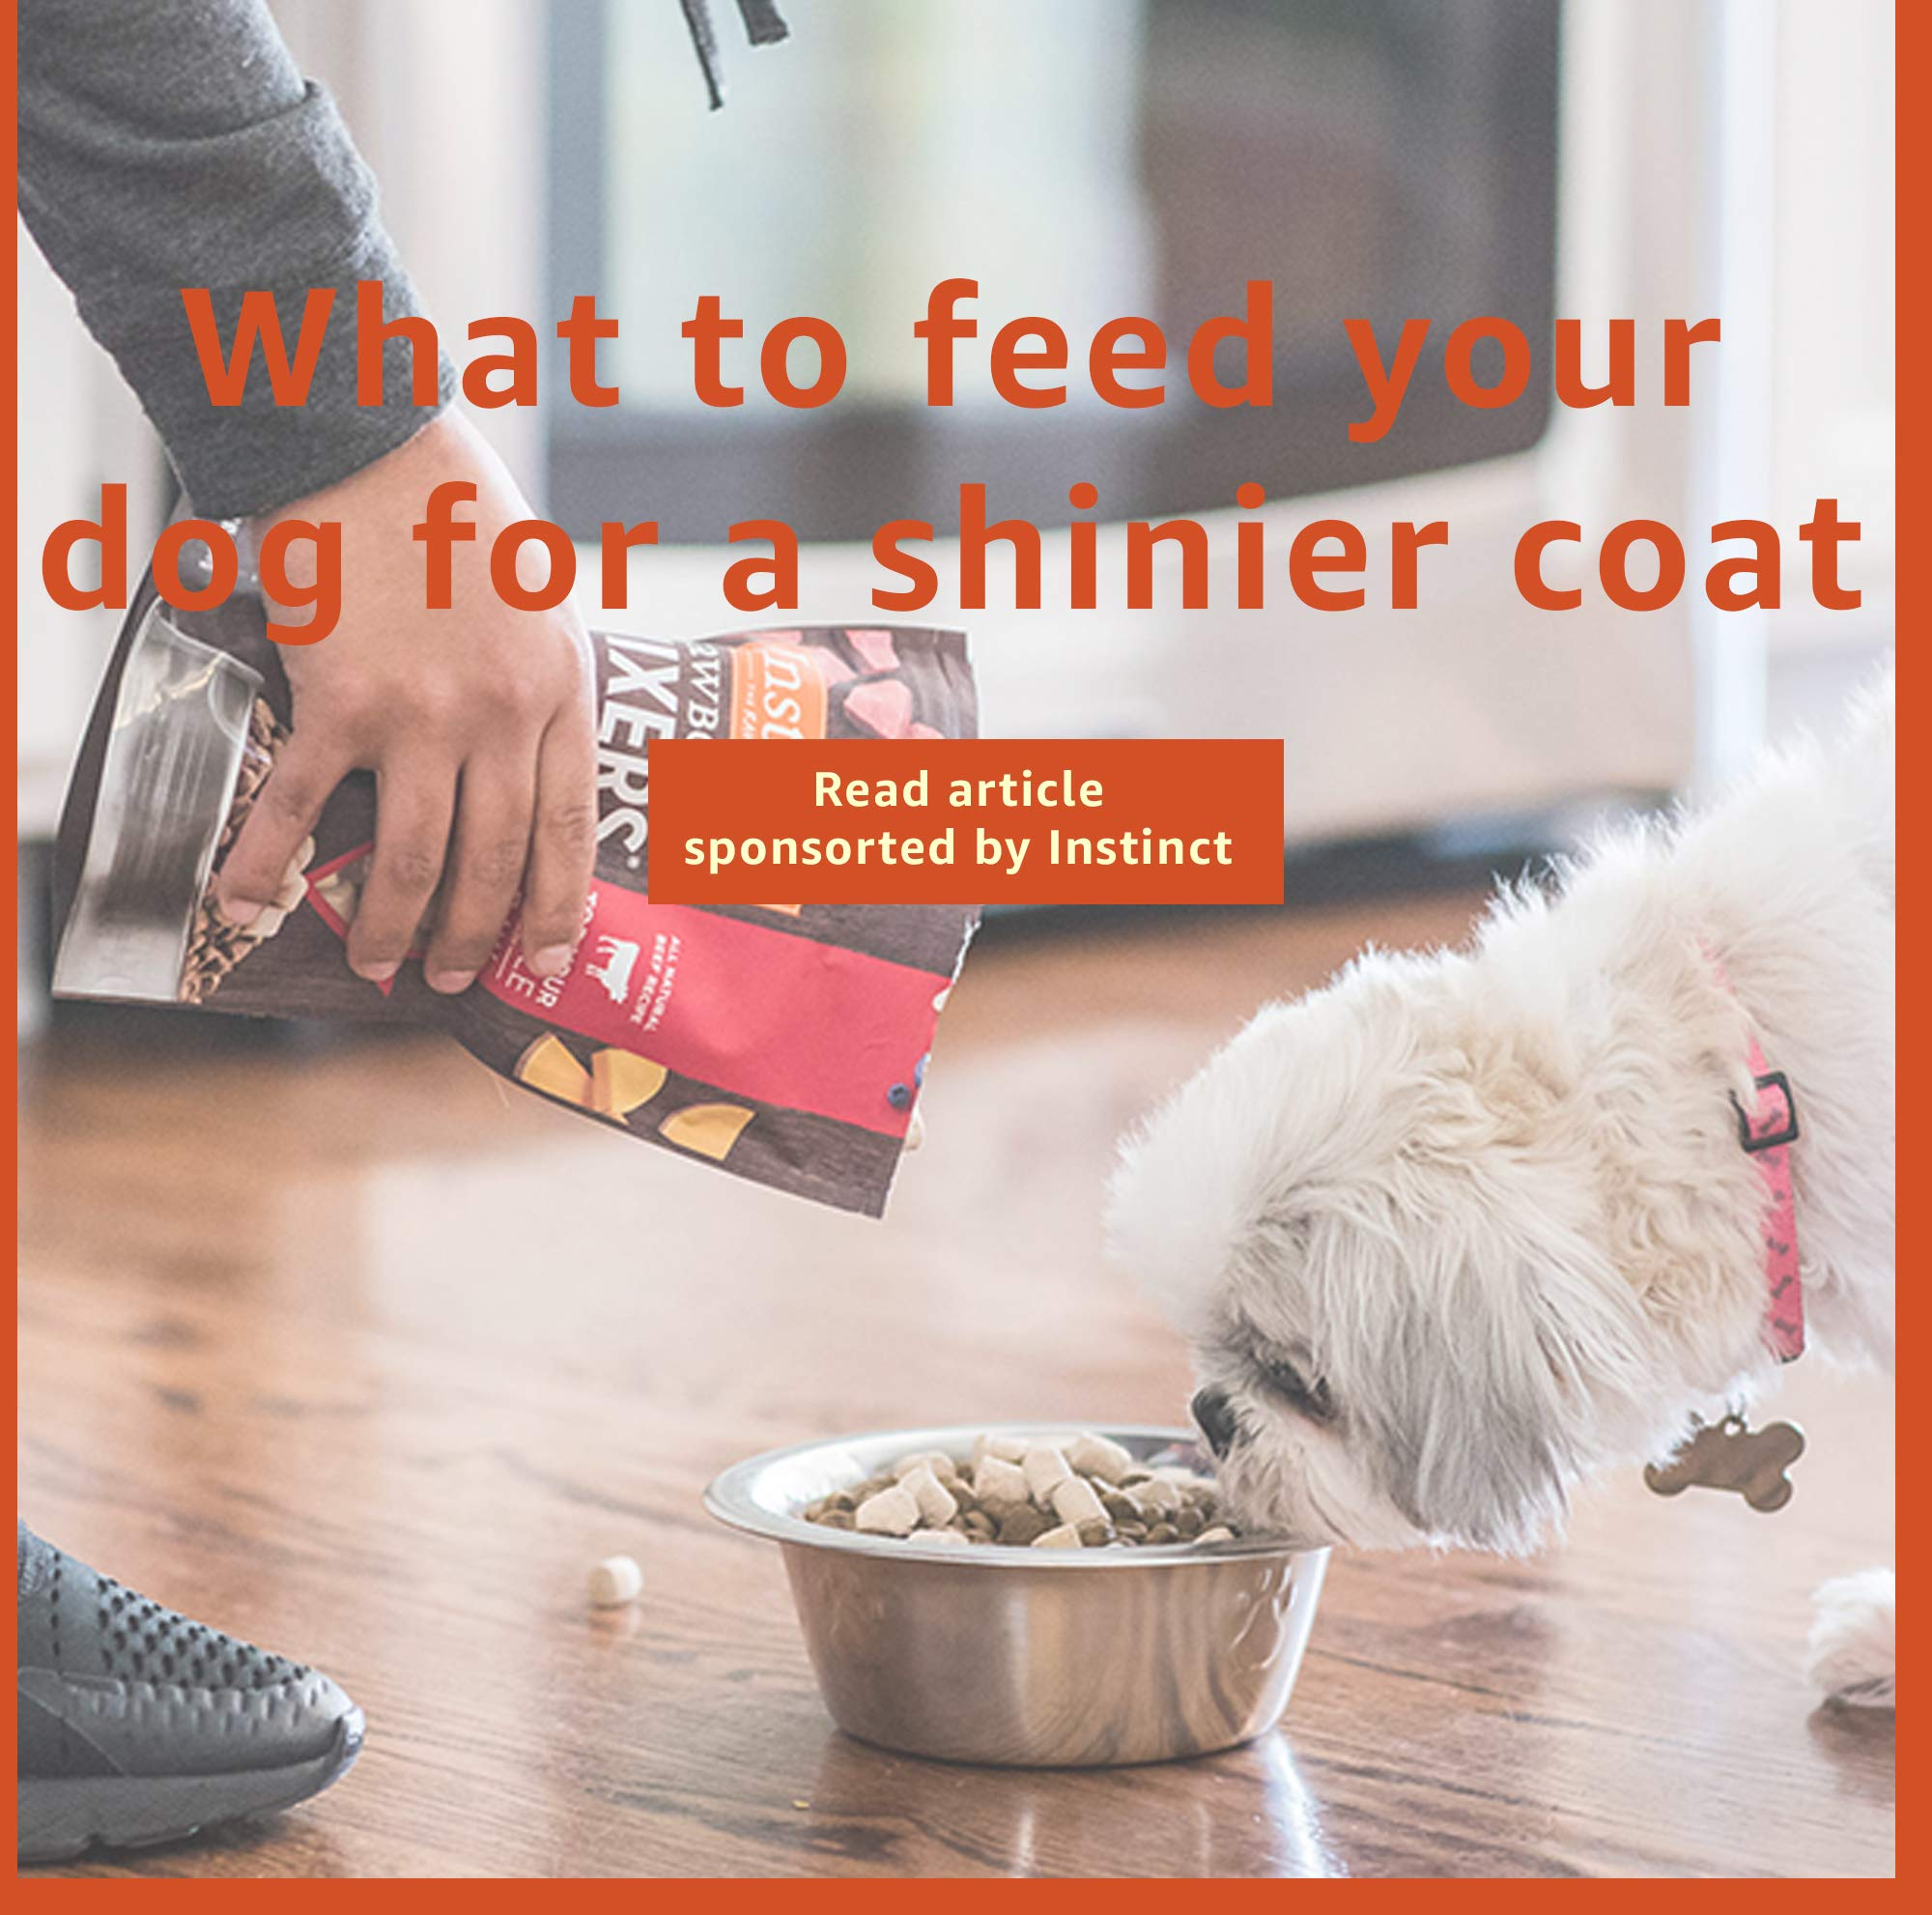 What to feed your dog for a shinier coat